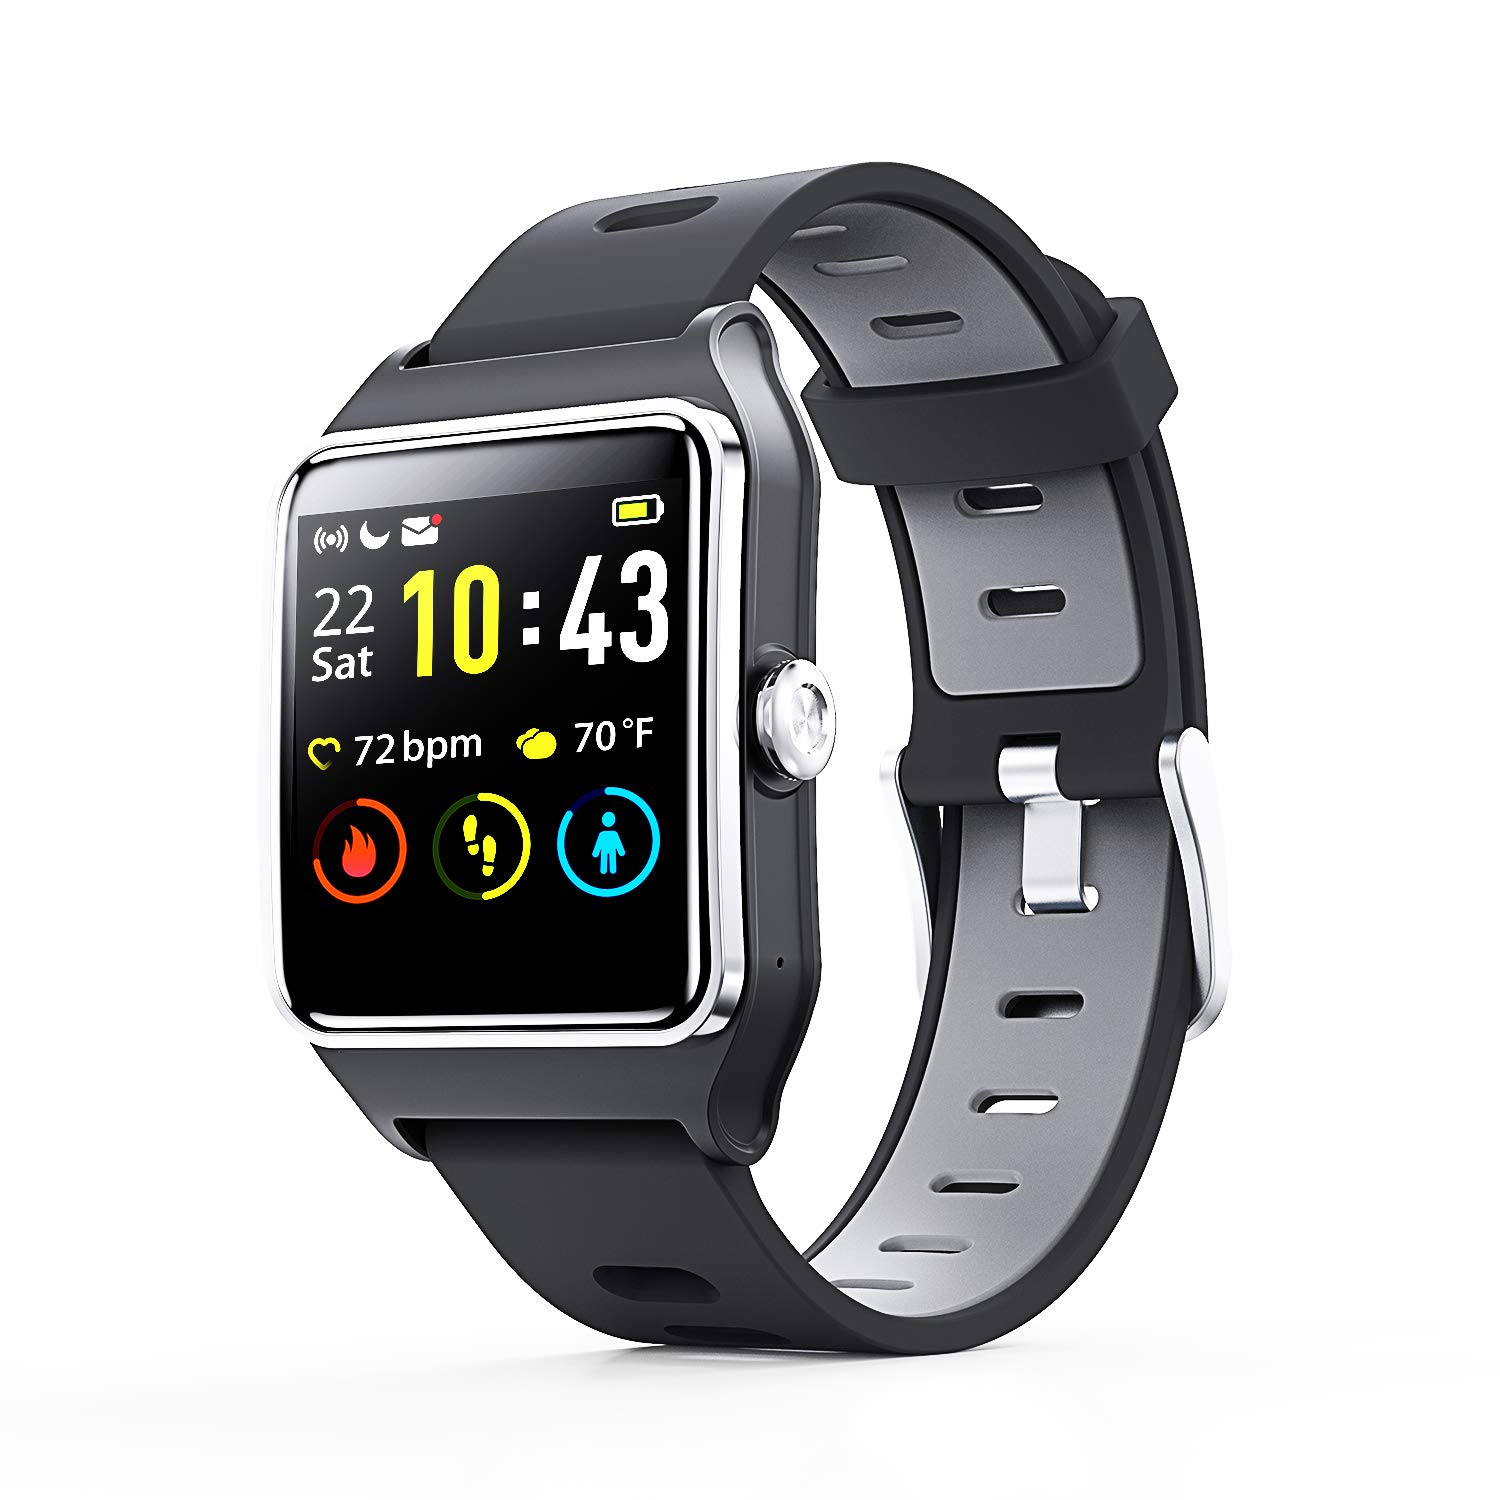 ENACFIRE Waterproof Smartwatch Activity Compatible